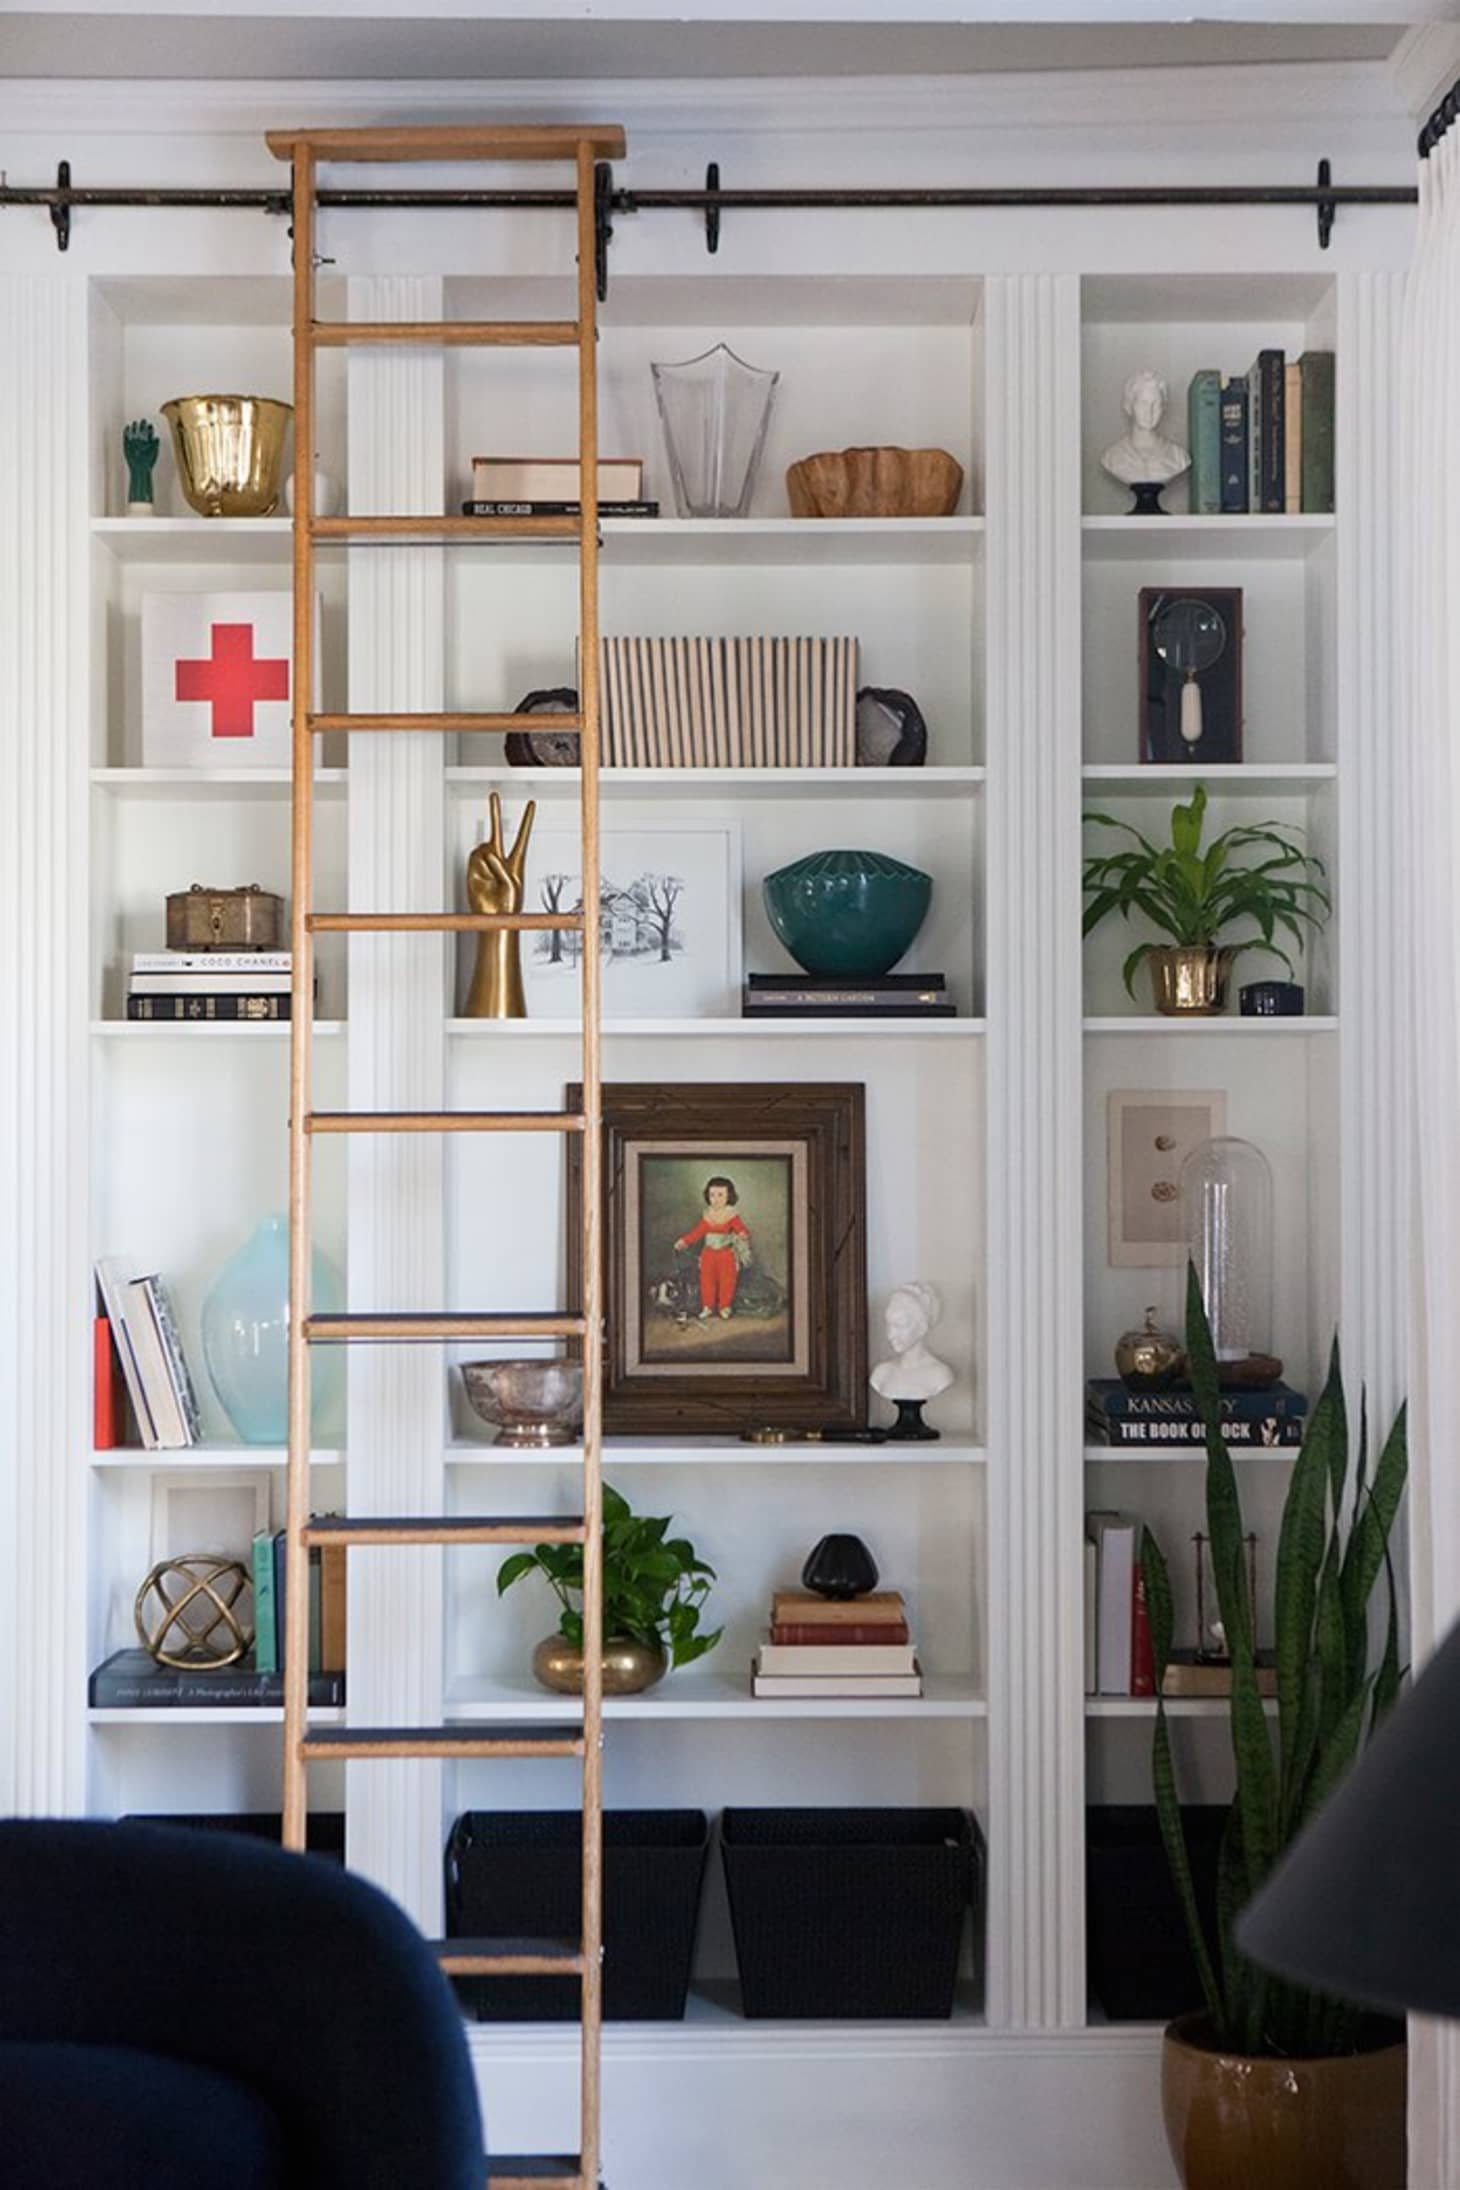 Ikea Hacks for Moving   Apartment Therapy